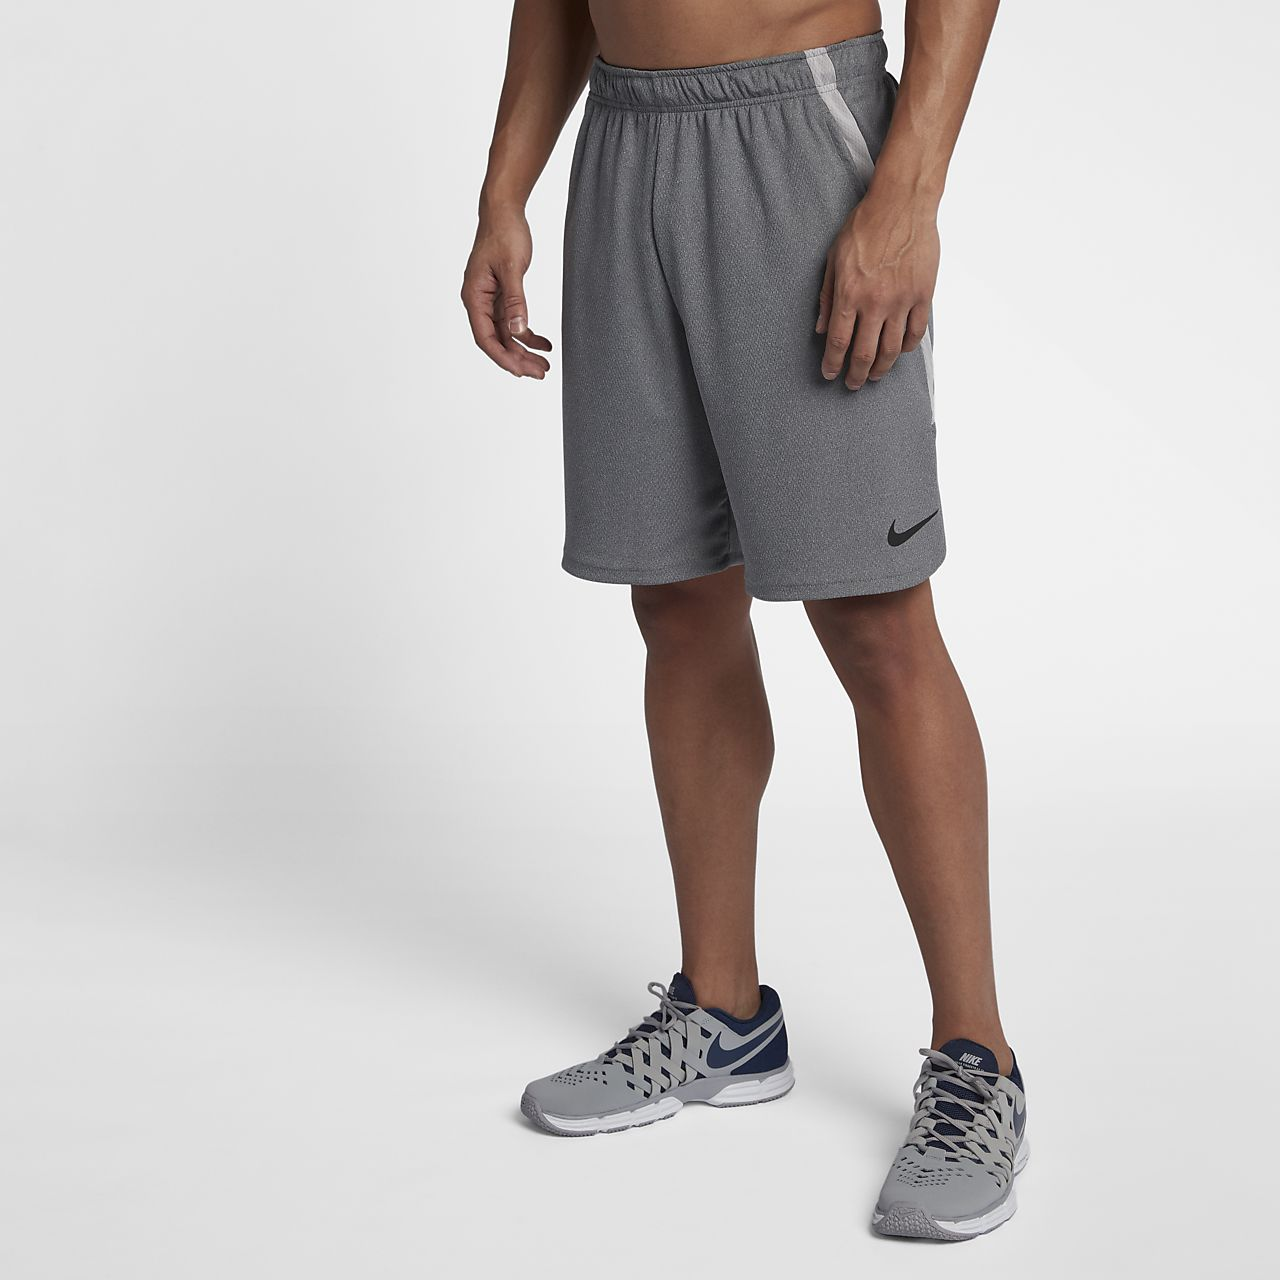 Nike Dri-FIT Men's Woven 23cm Training Shorts